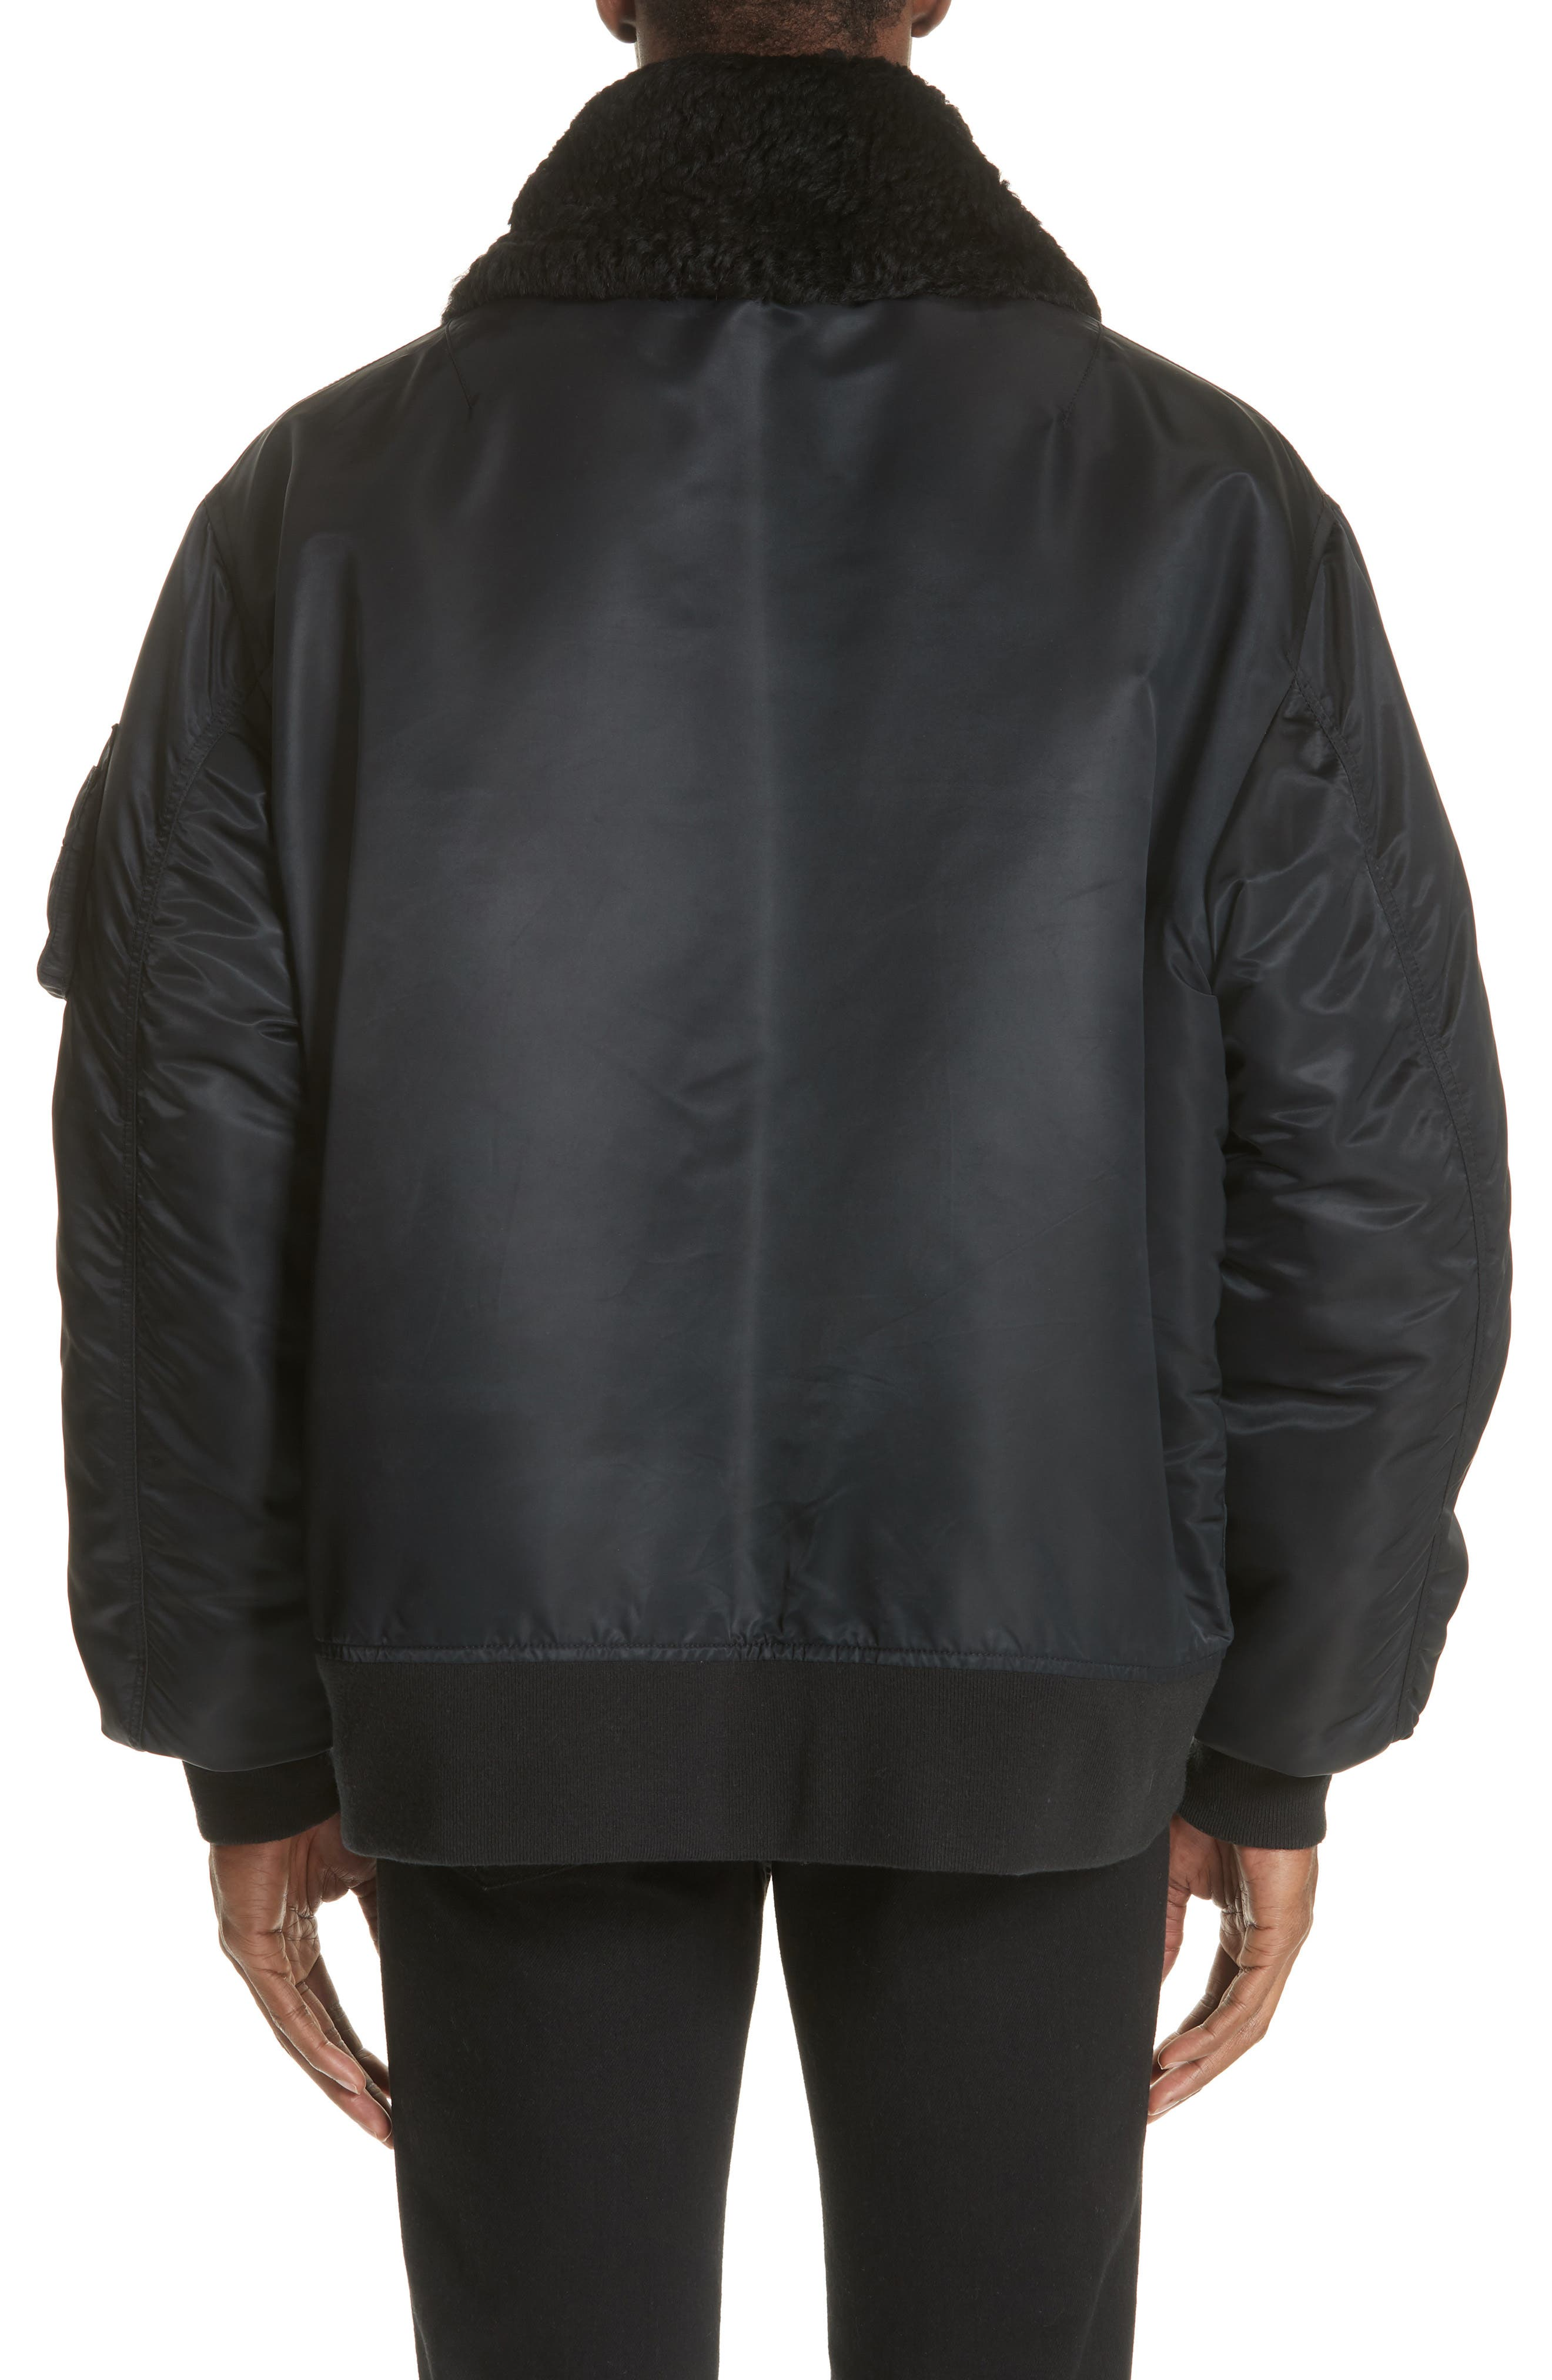 Oversize Bomber Jacket with Genuine Shearling Collar,                             Alternate thumbnail 2, color,                             001